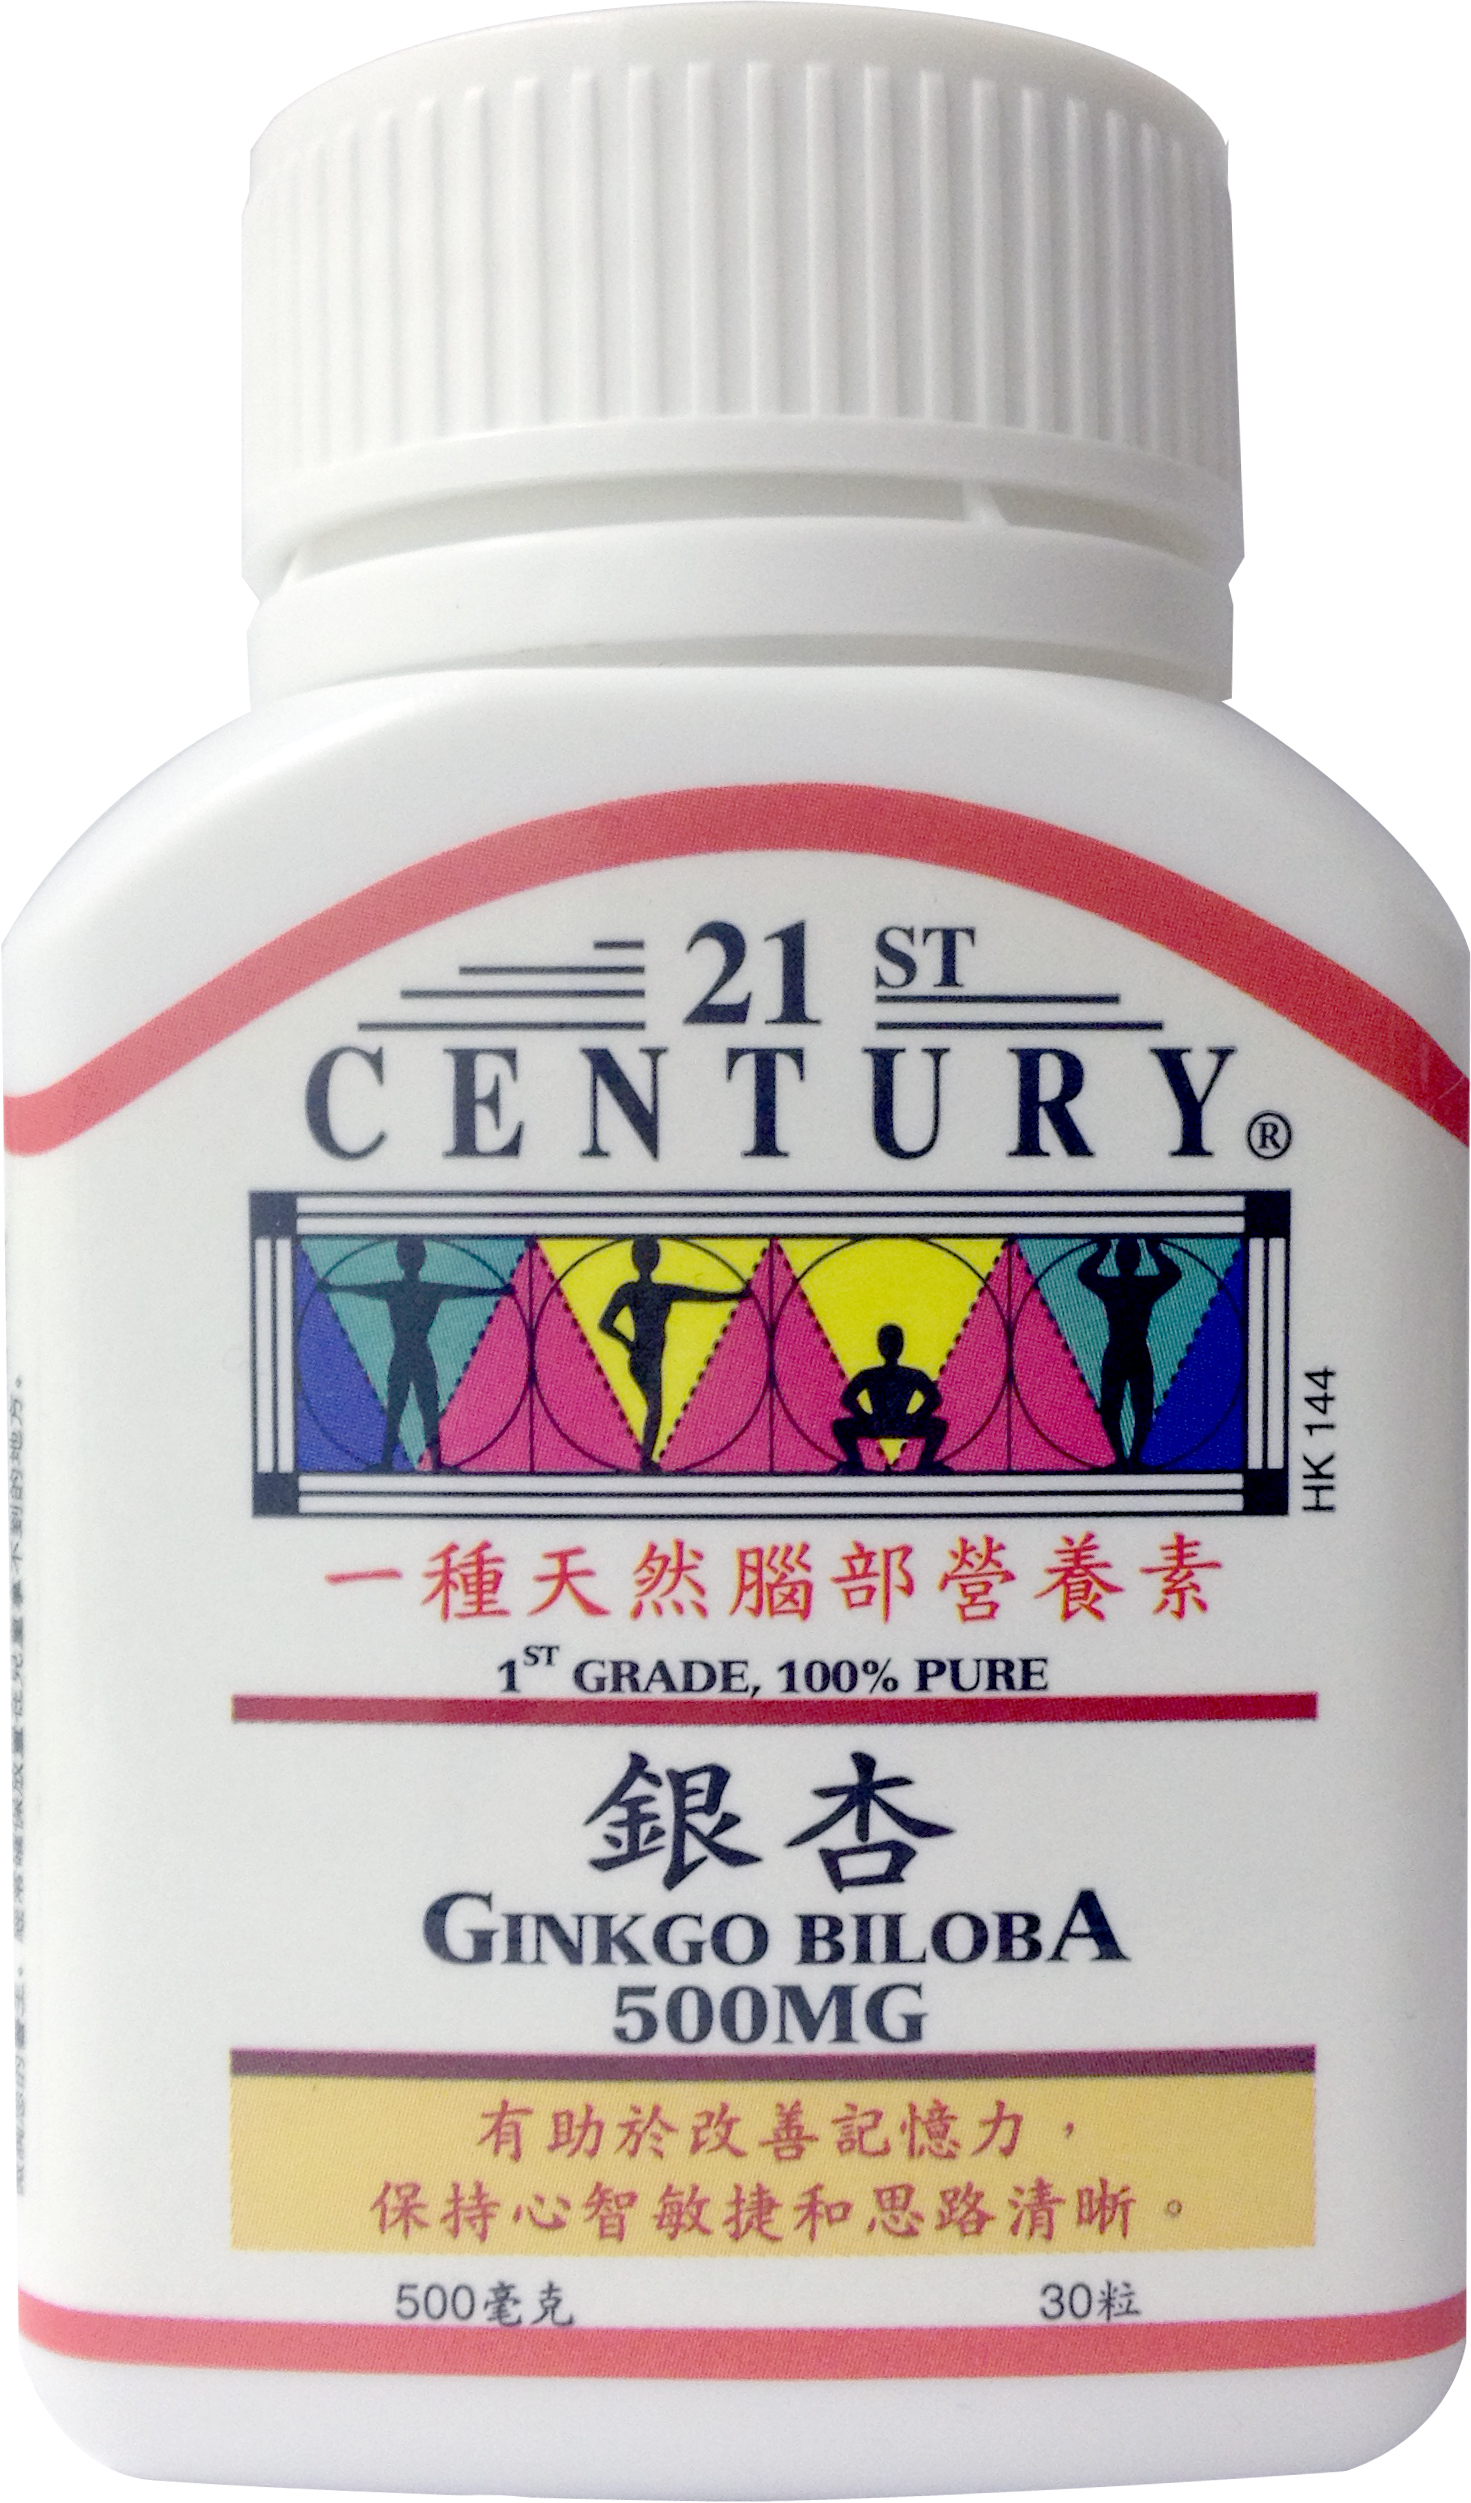 GINKGO BILOBA 500mg for brain & hand/feet circulation HK$65